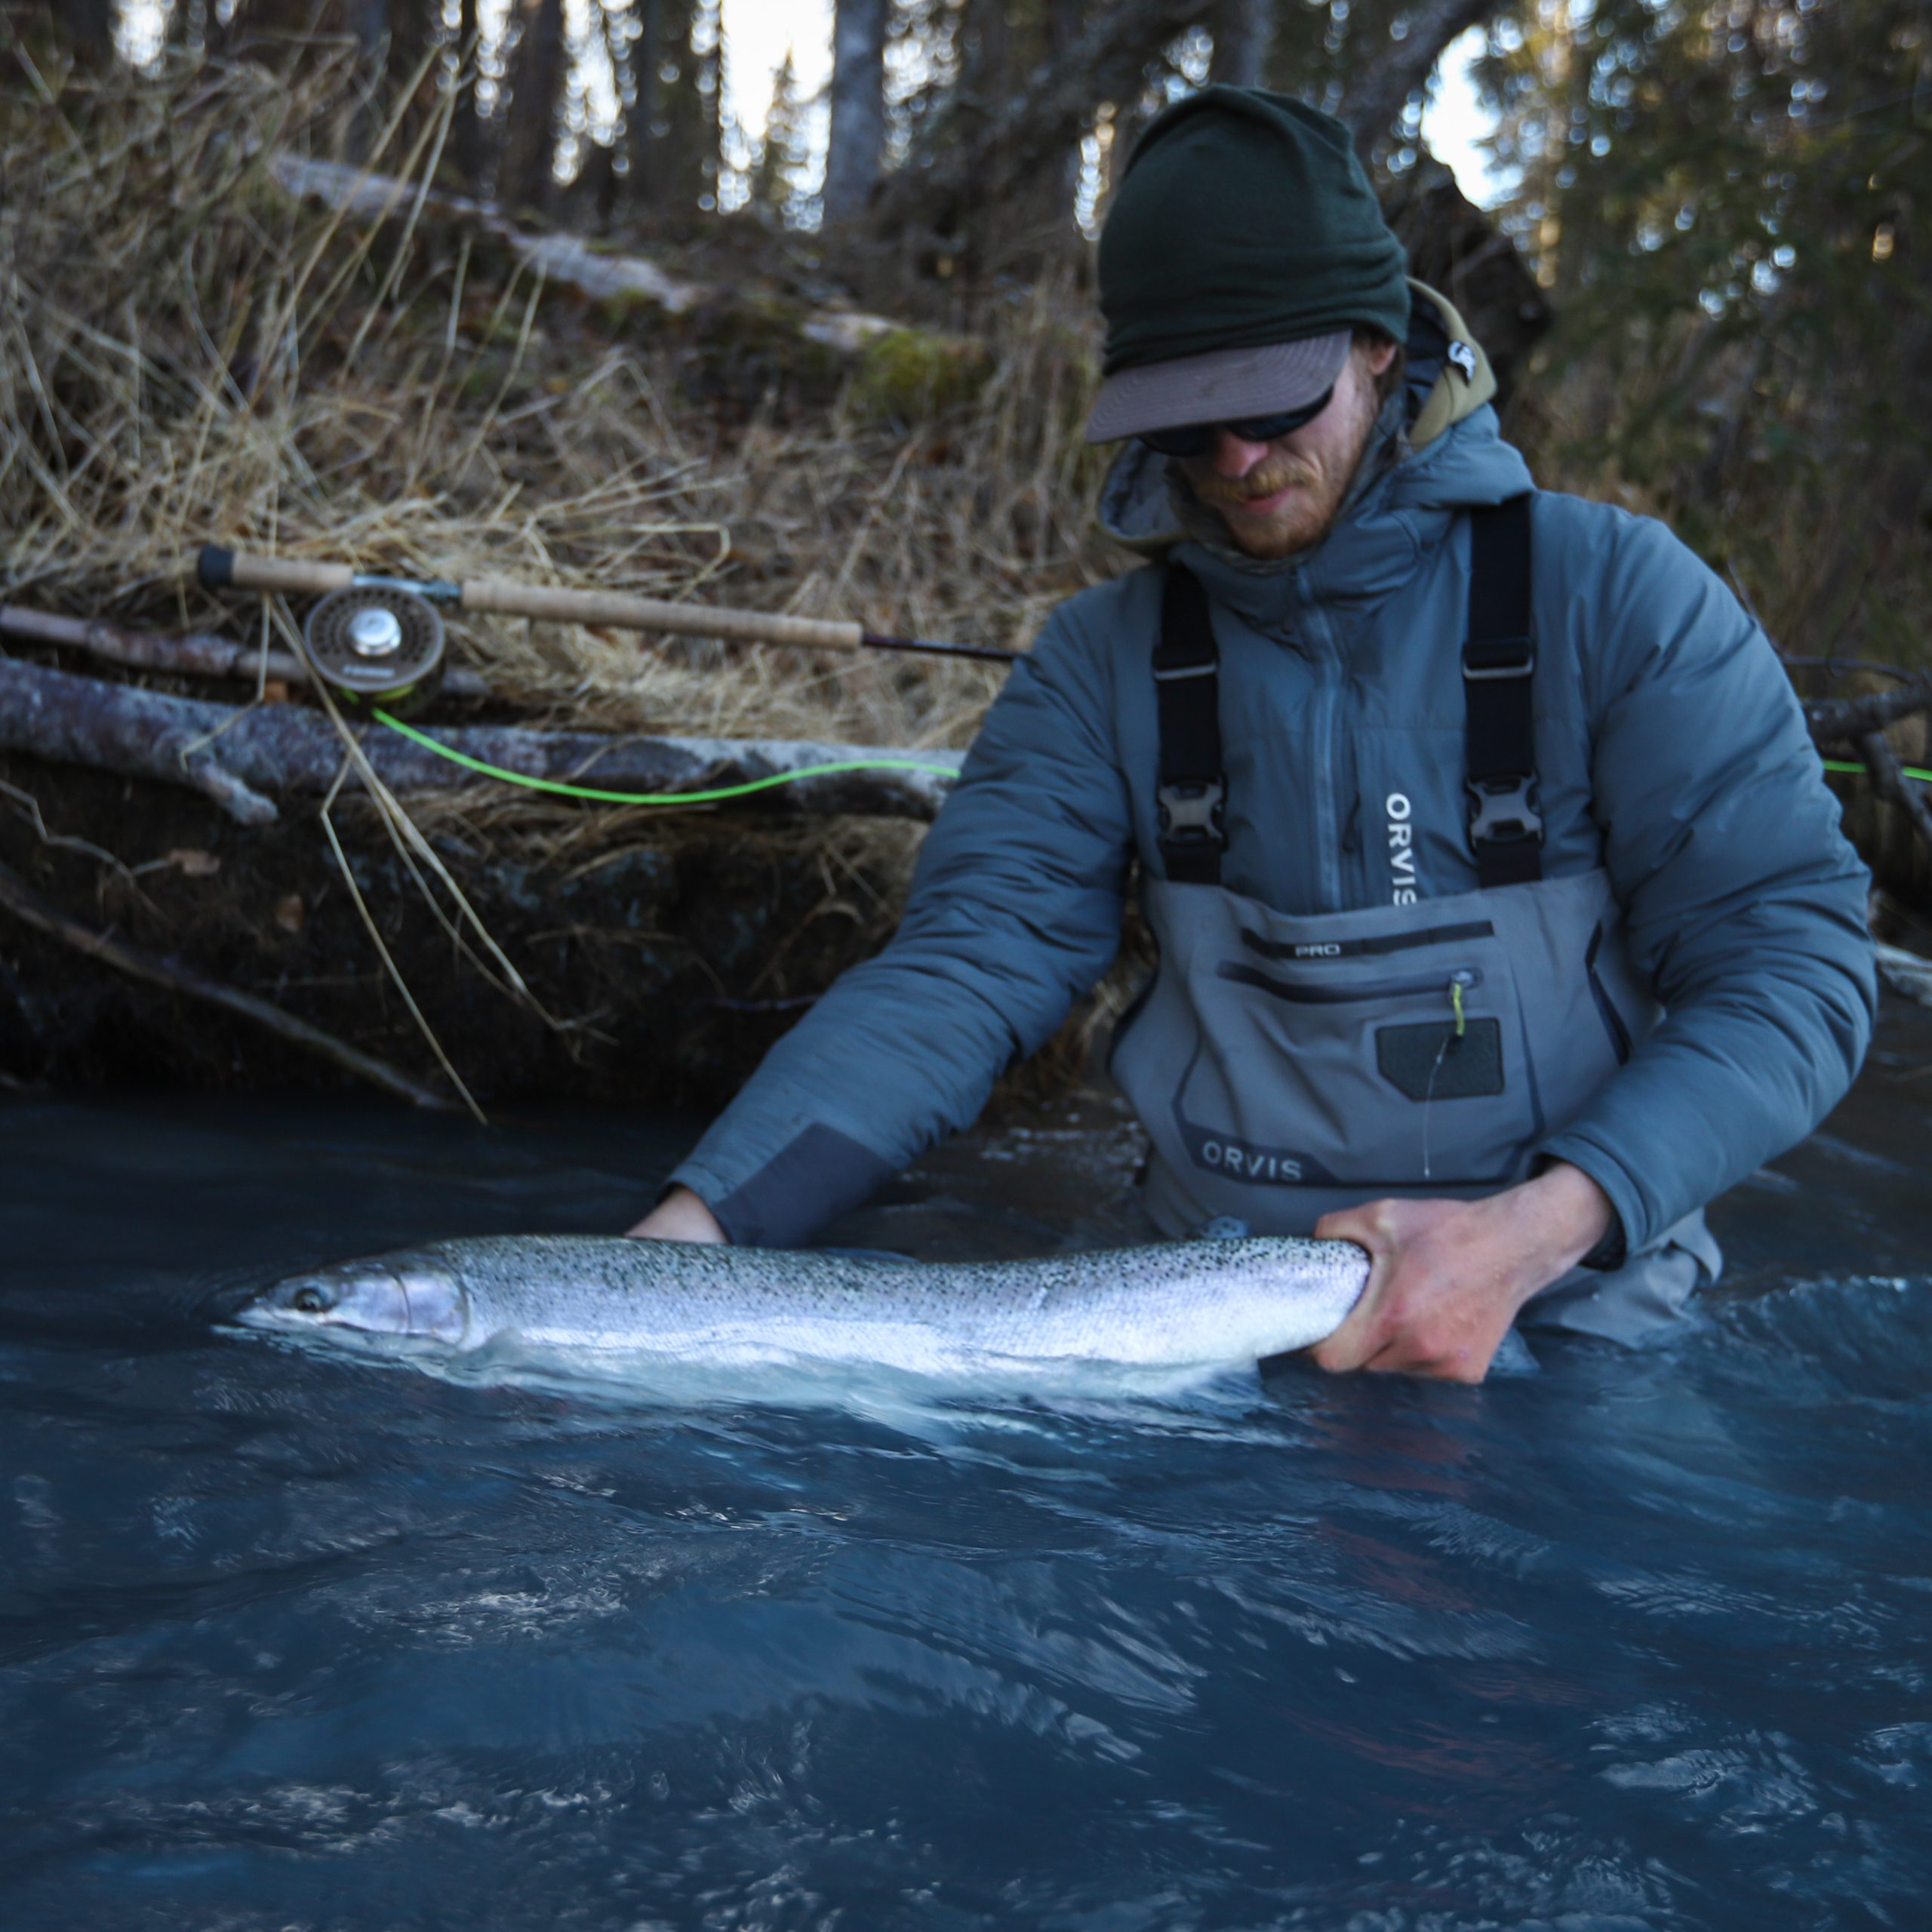 An image of an Alaska fishing guide in the wilderness of Alaska on a Alaska Fly Fishing Trips.